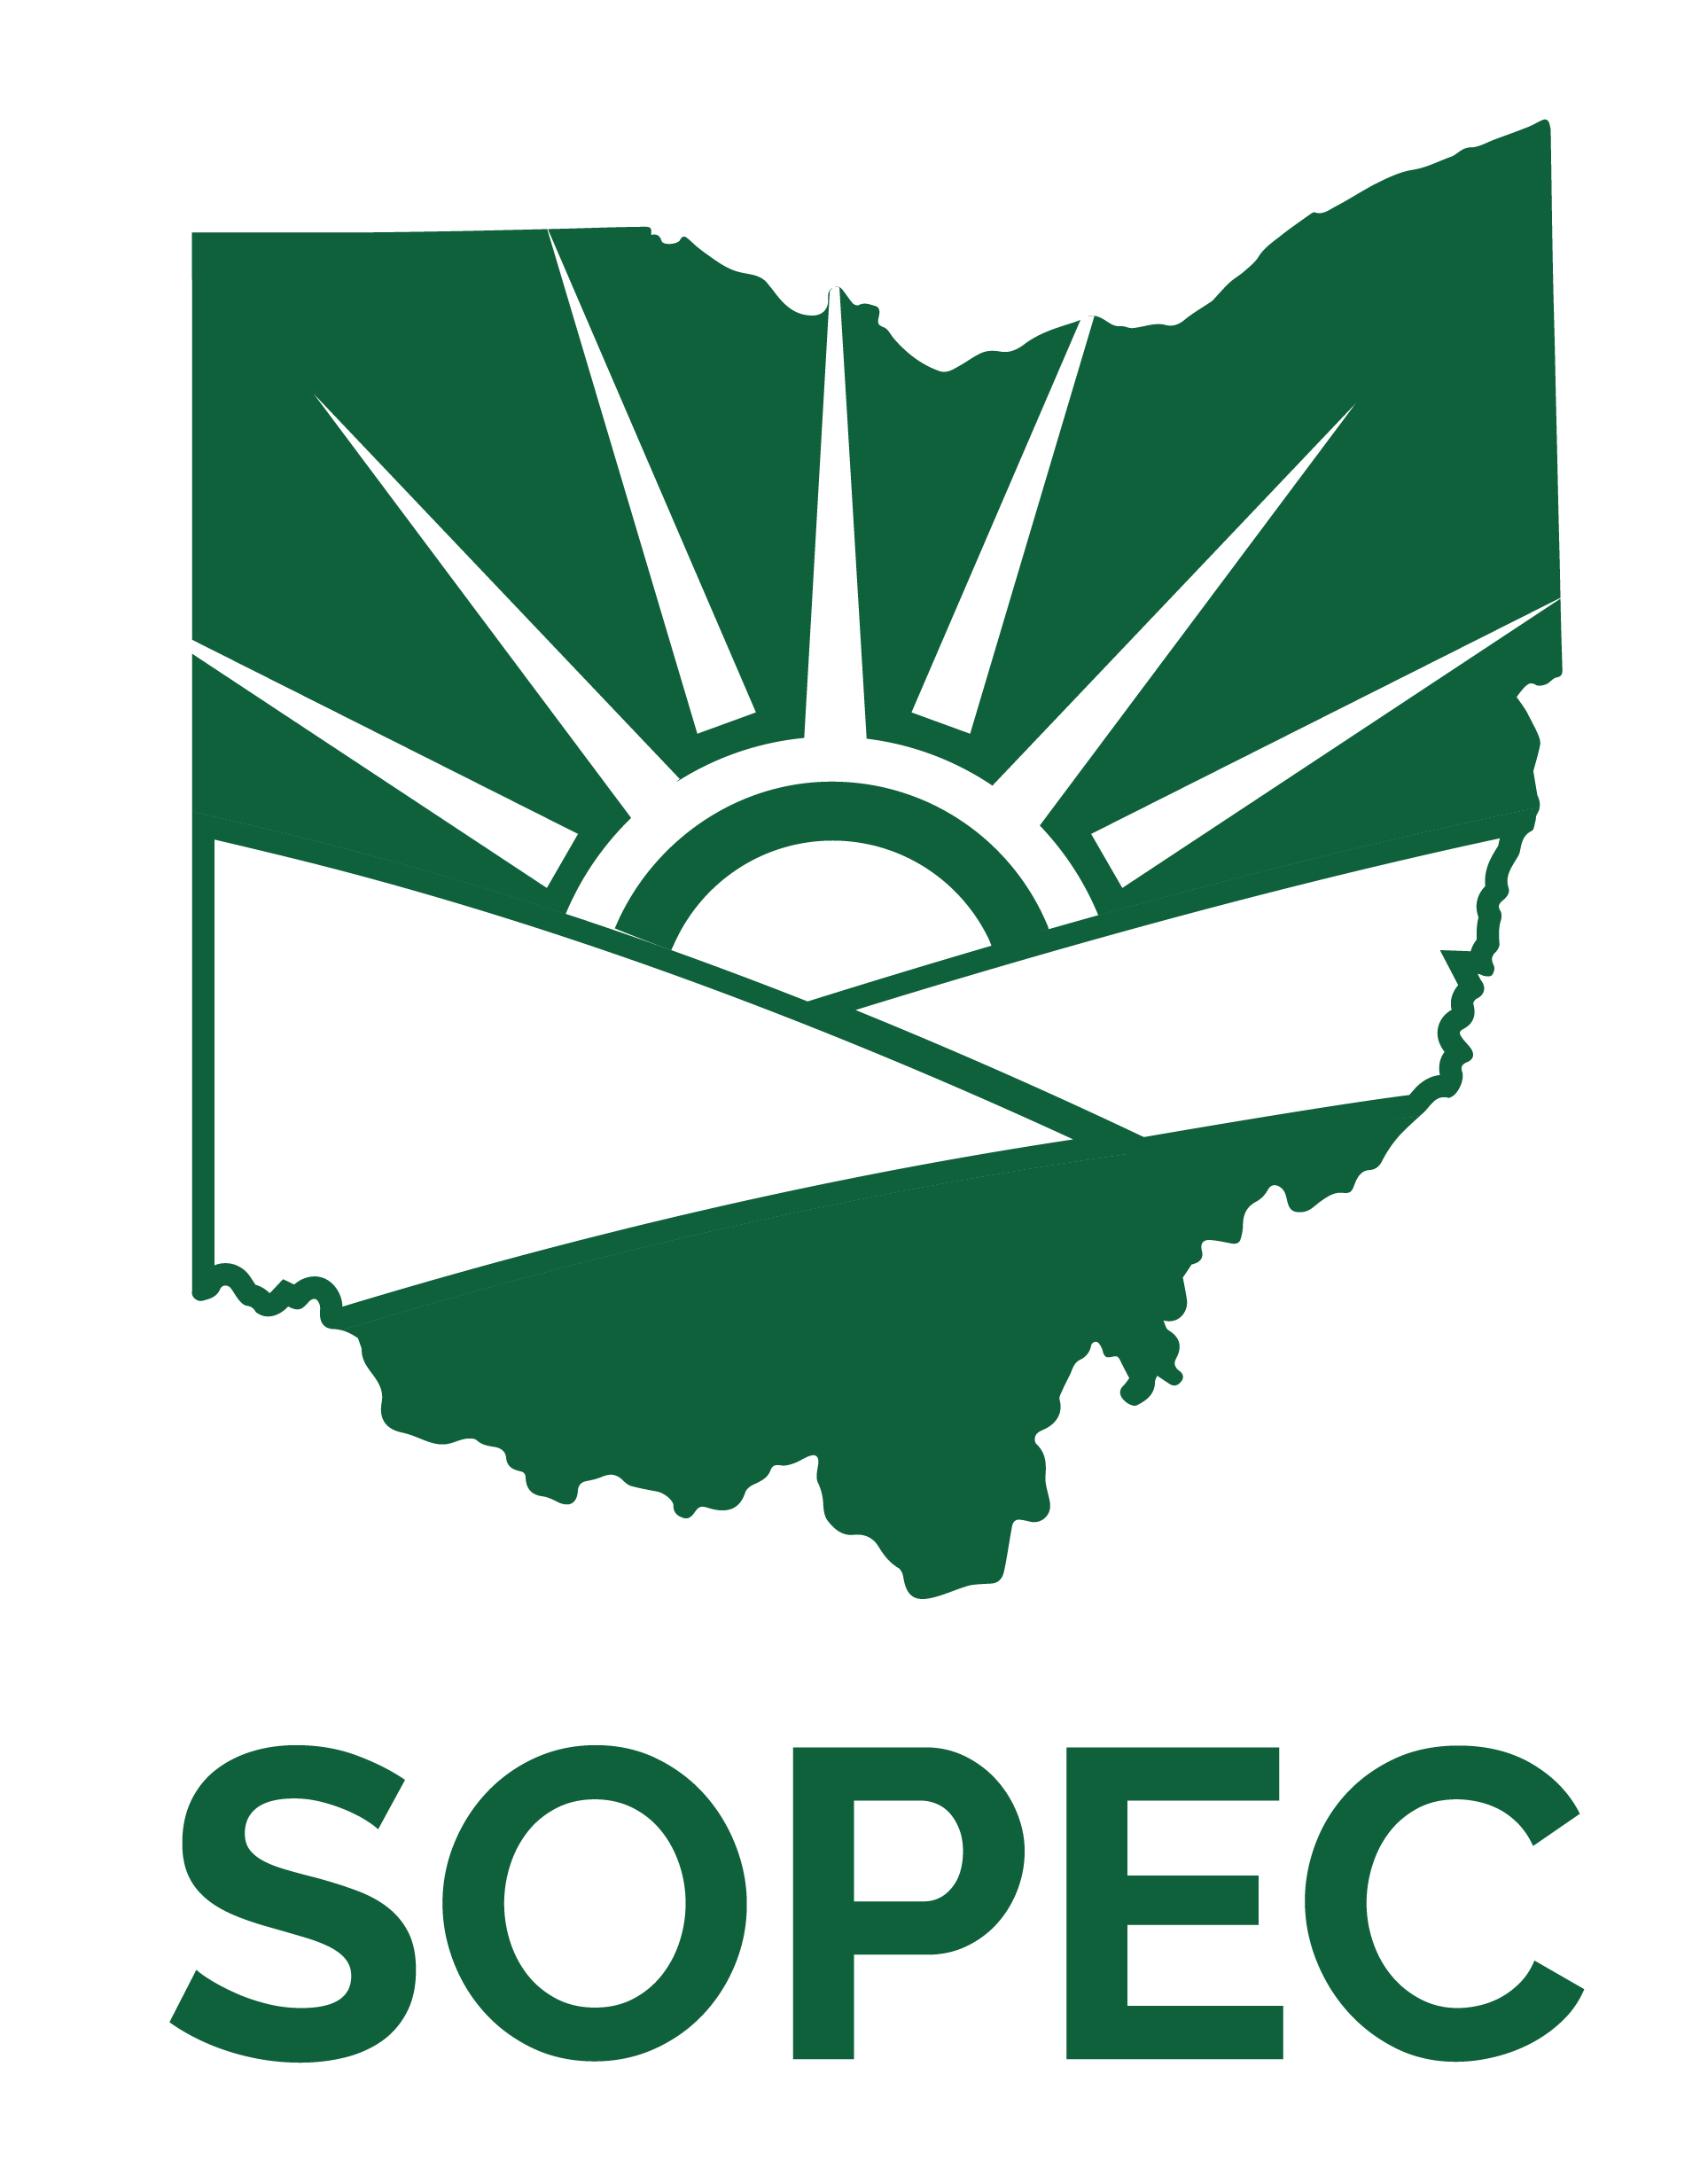 SOPEC-logo-dark-green_small-use_vertical.png